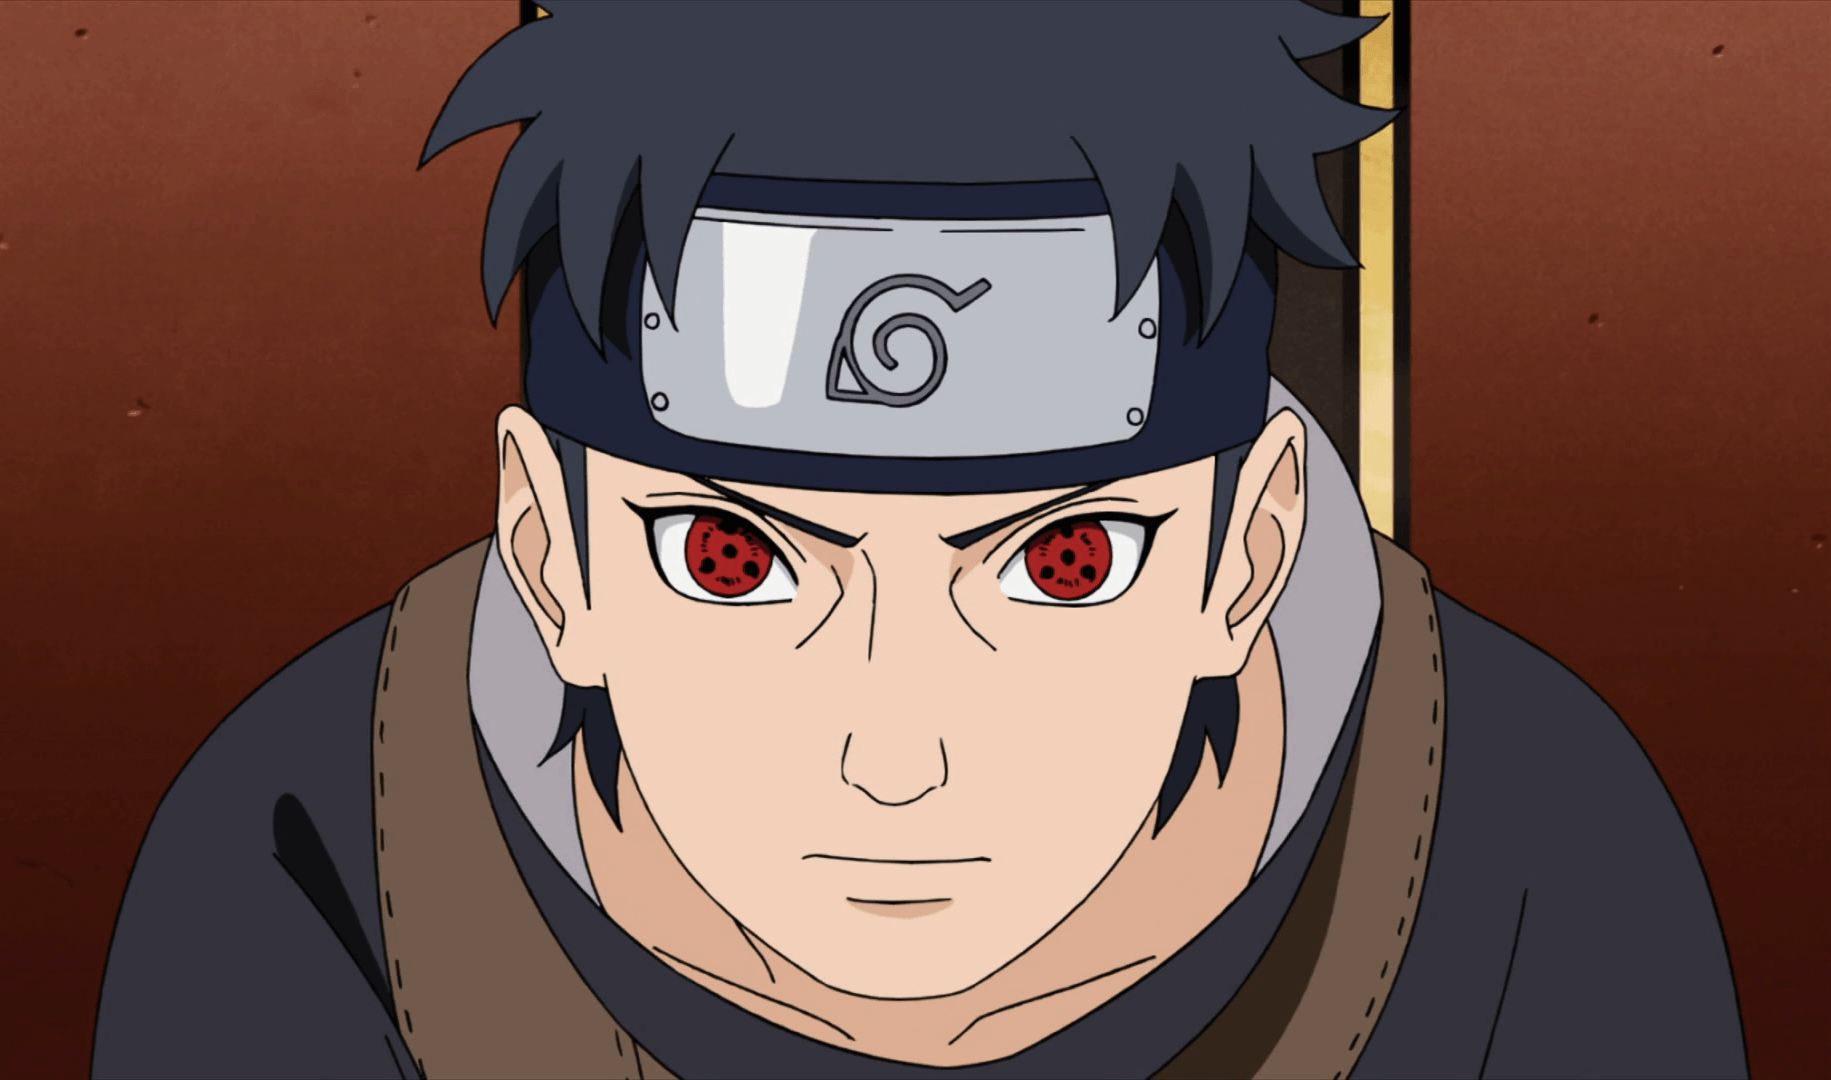 Shisui Uchiha Wallpapers - Wallpaper Cave